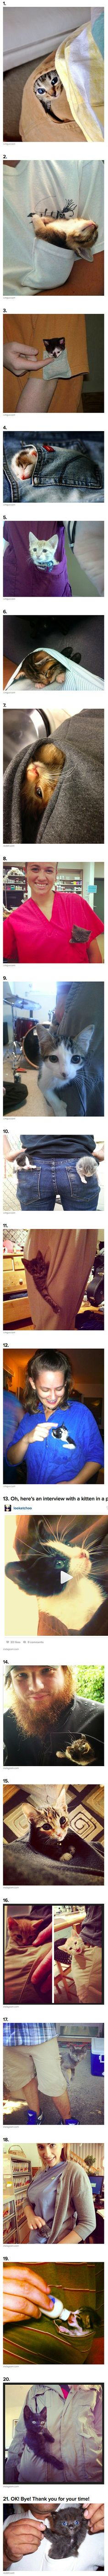 Another day, another batch of cat pictures that have gone viral online. This time, we're dealing with pocket cats, or in other words, tiny kittens that have found their way into shirt / pant pockets.